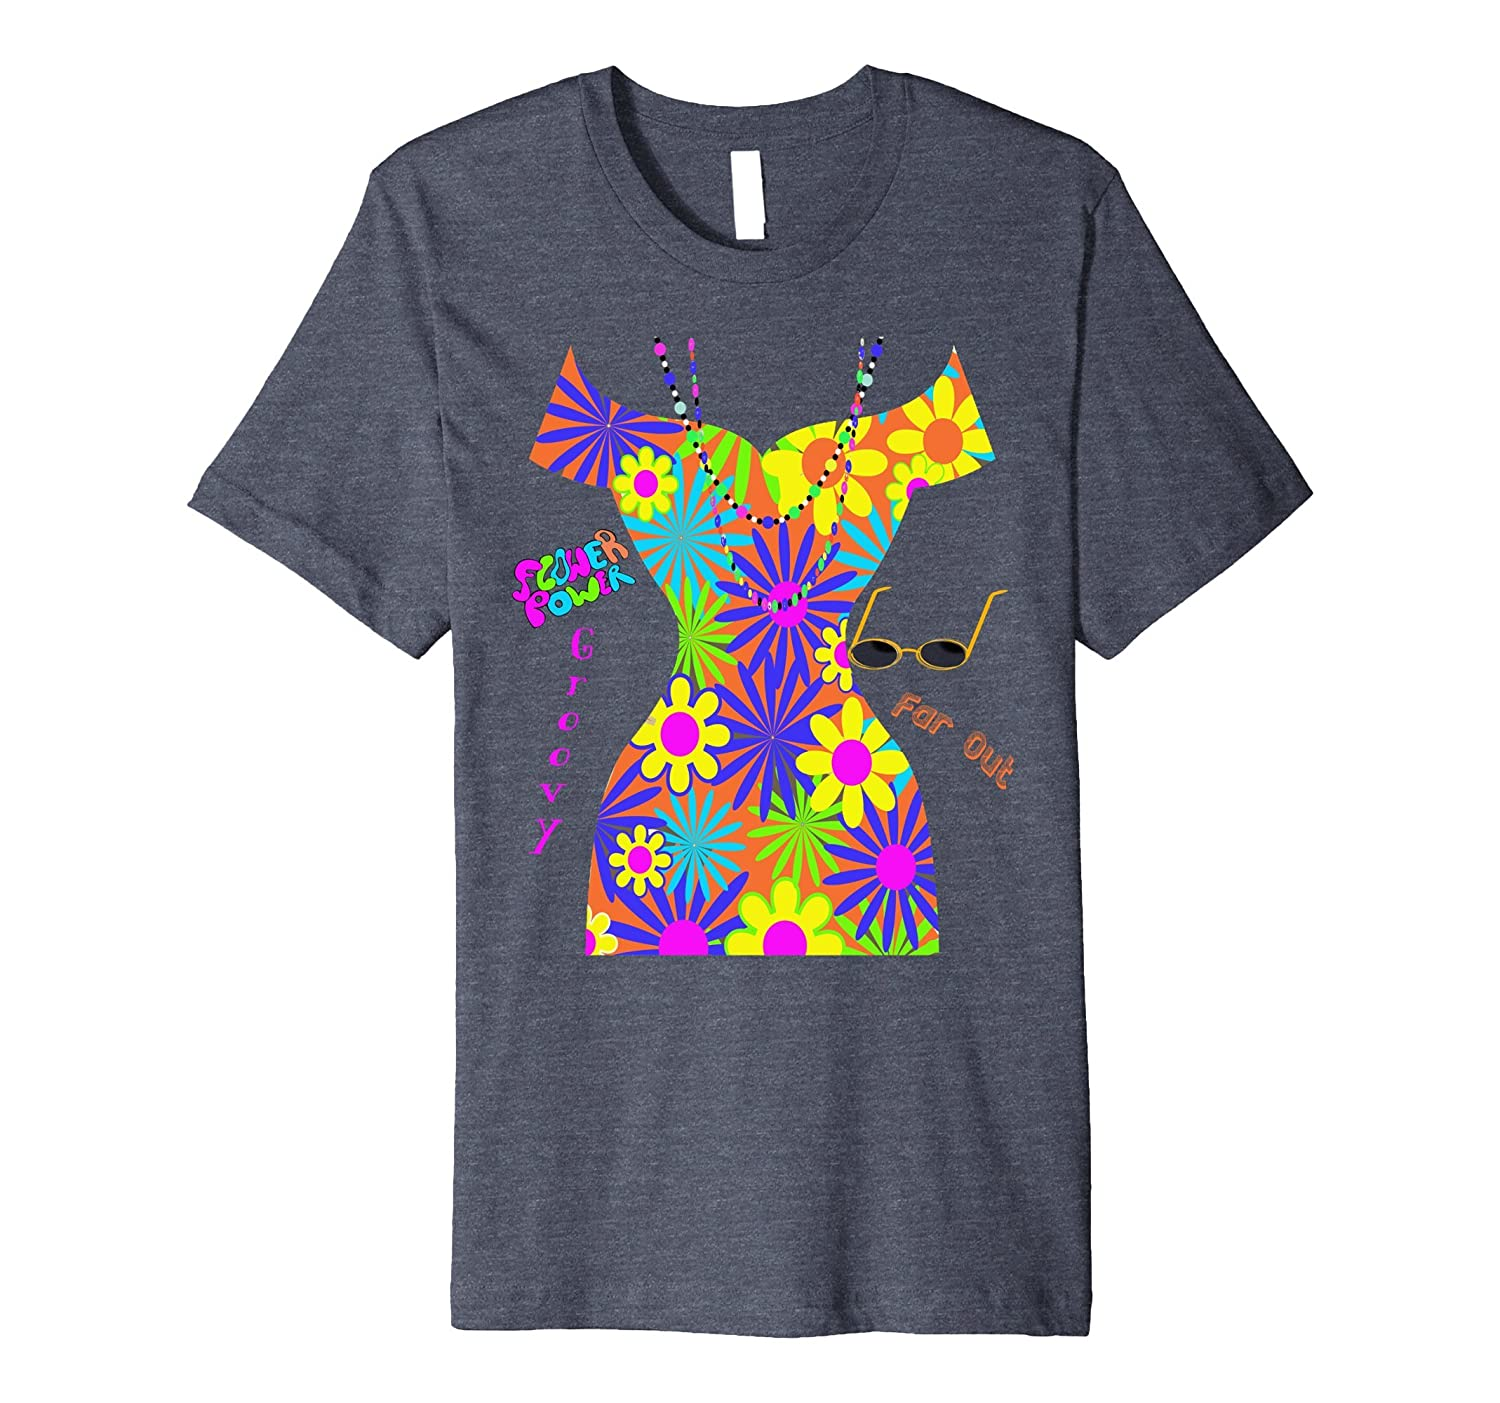 Hippie Chick Halloween Costume T-Shirt